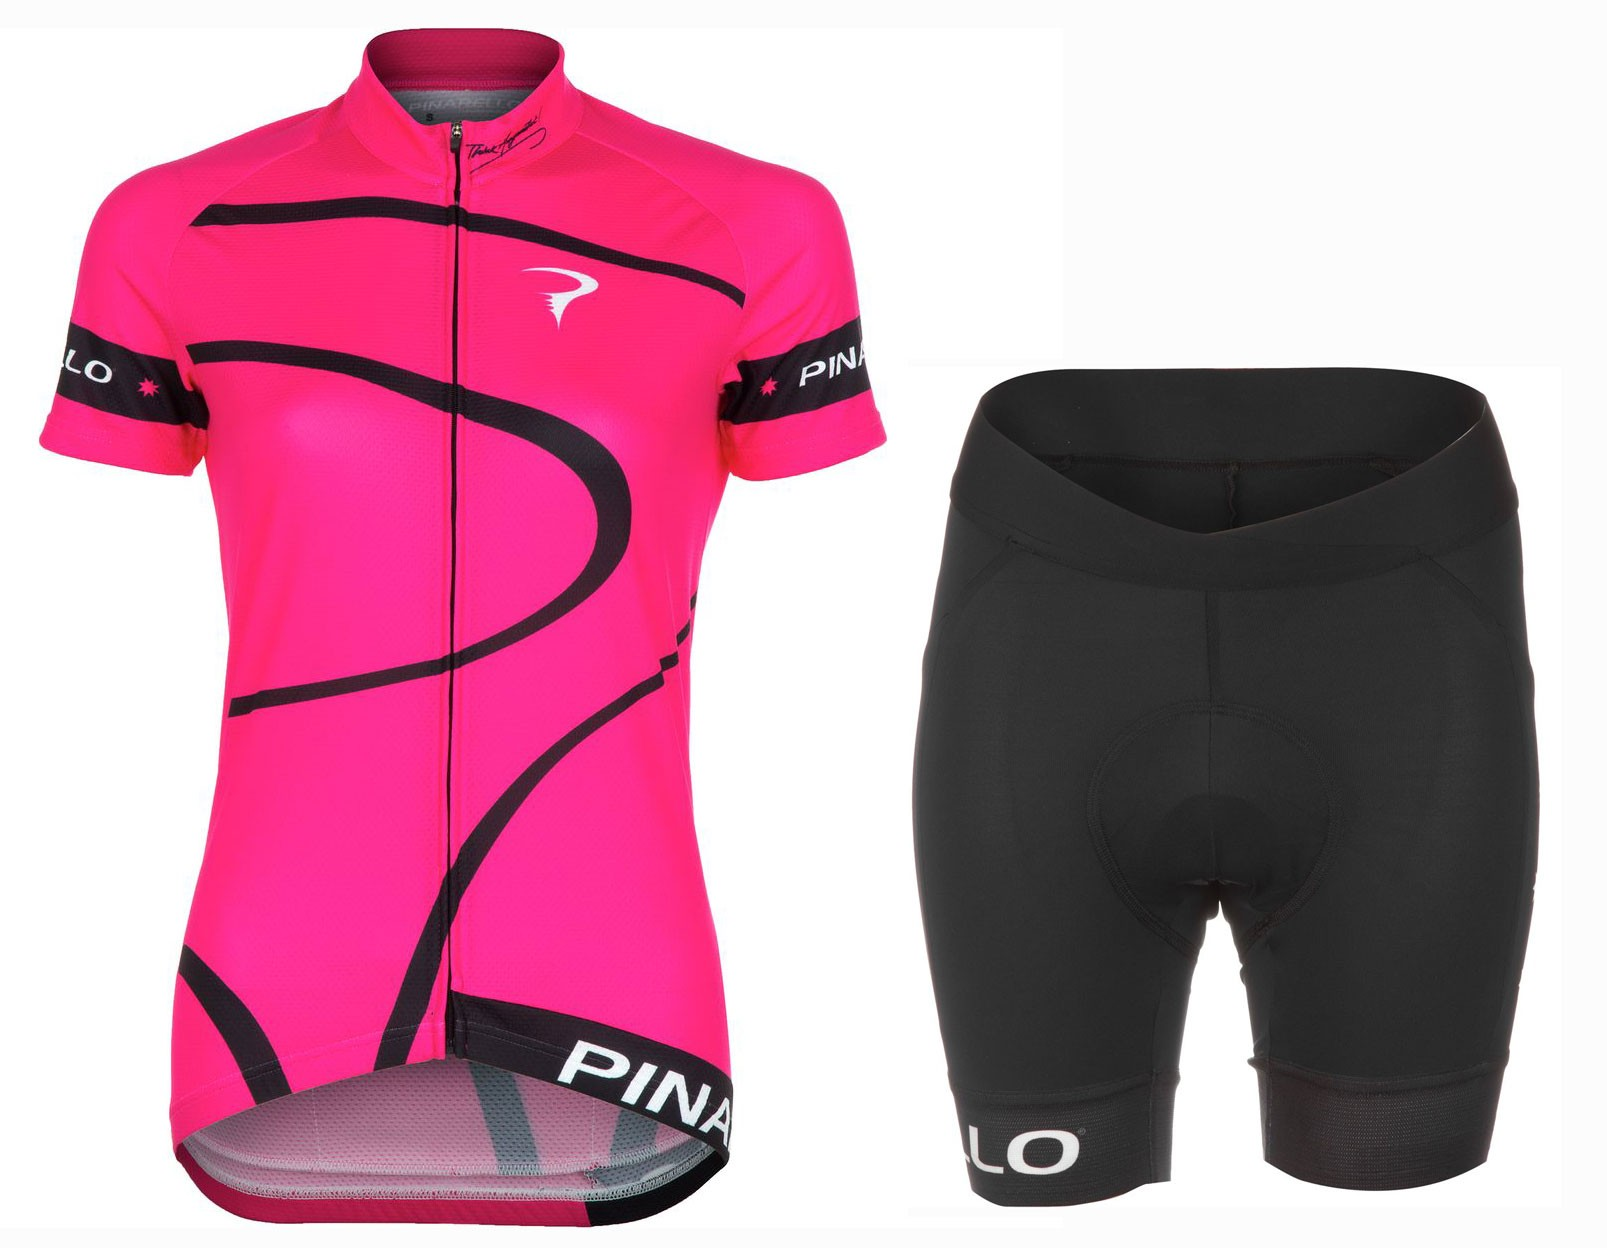 2016 Pinarello MIRA Pink Women Cycling Jersey And Regular Shorts Set ce44b3078